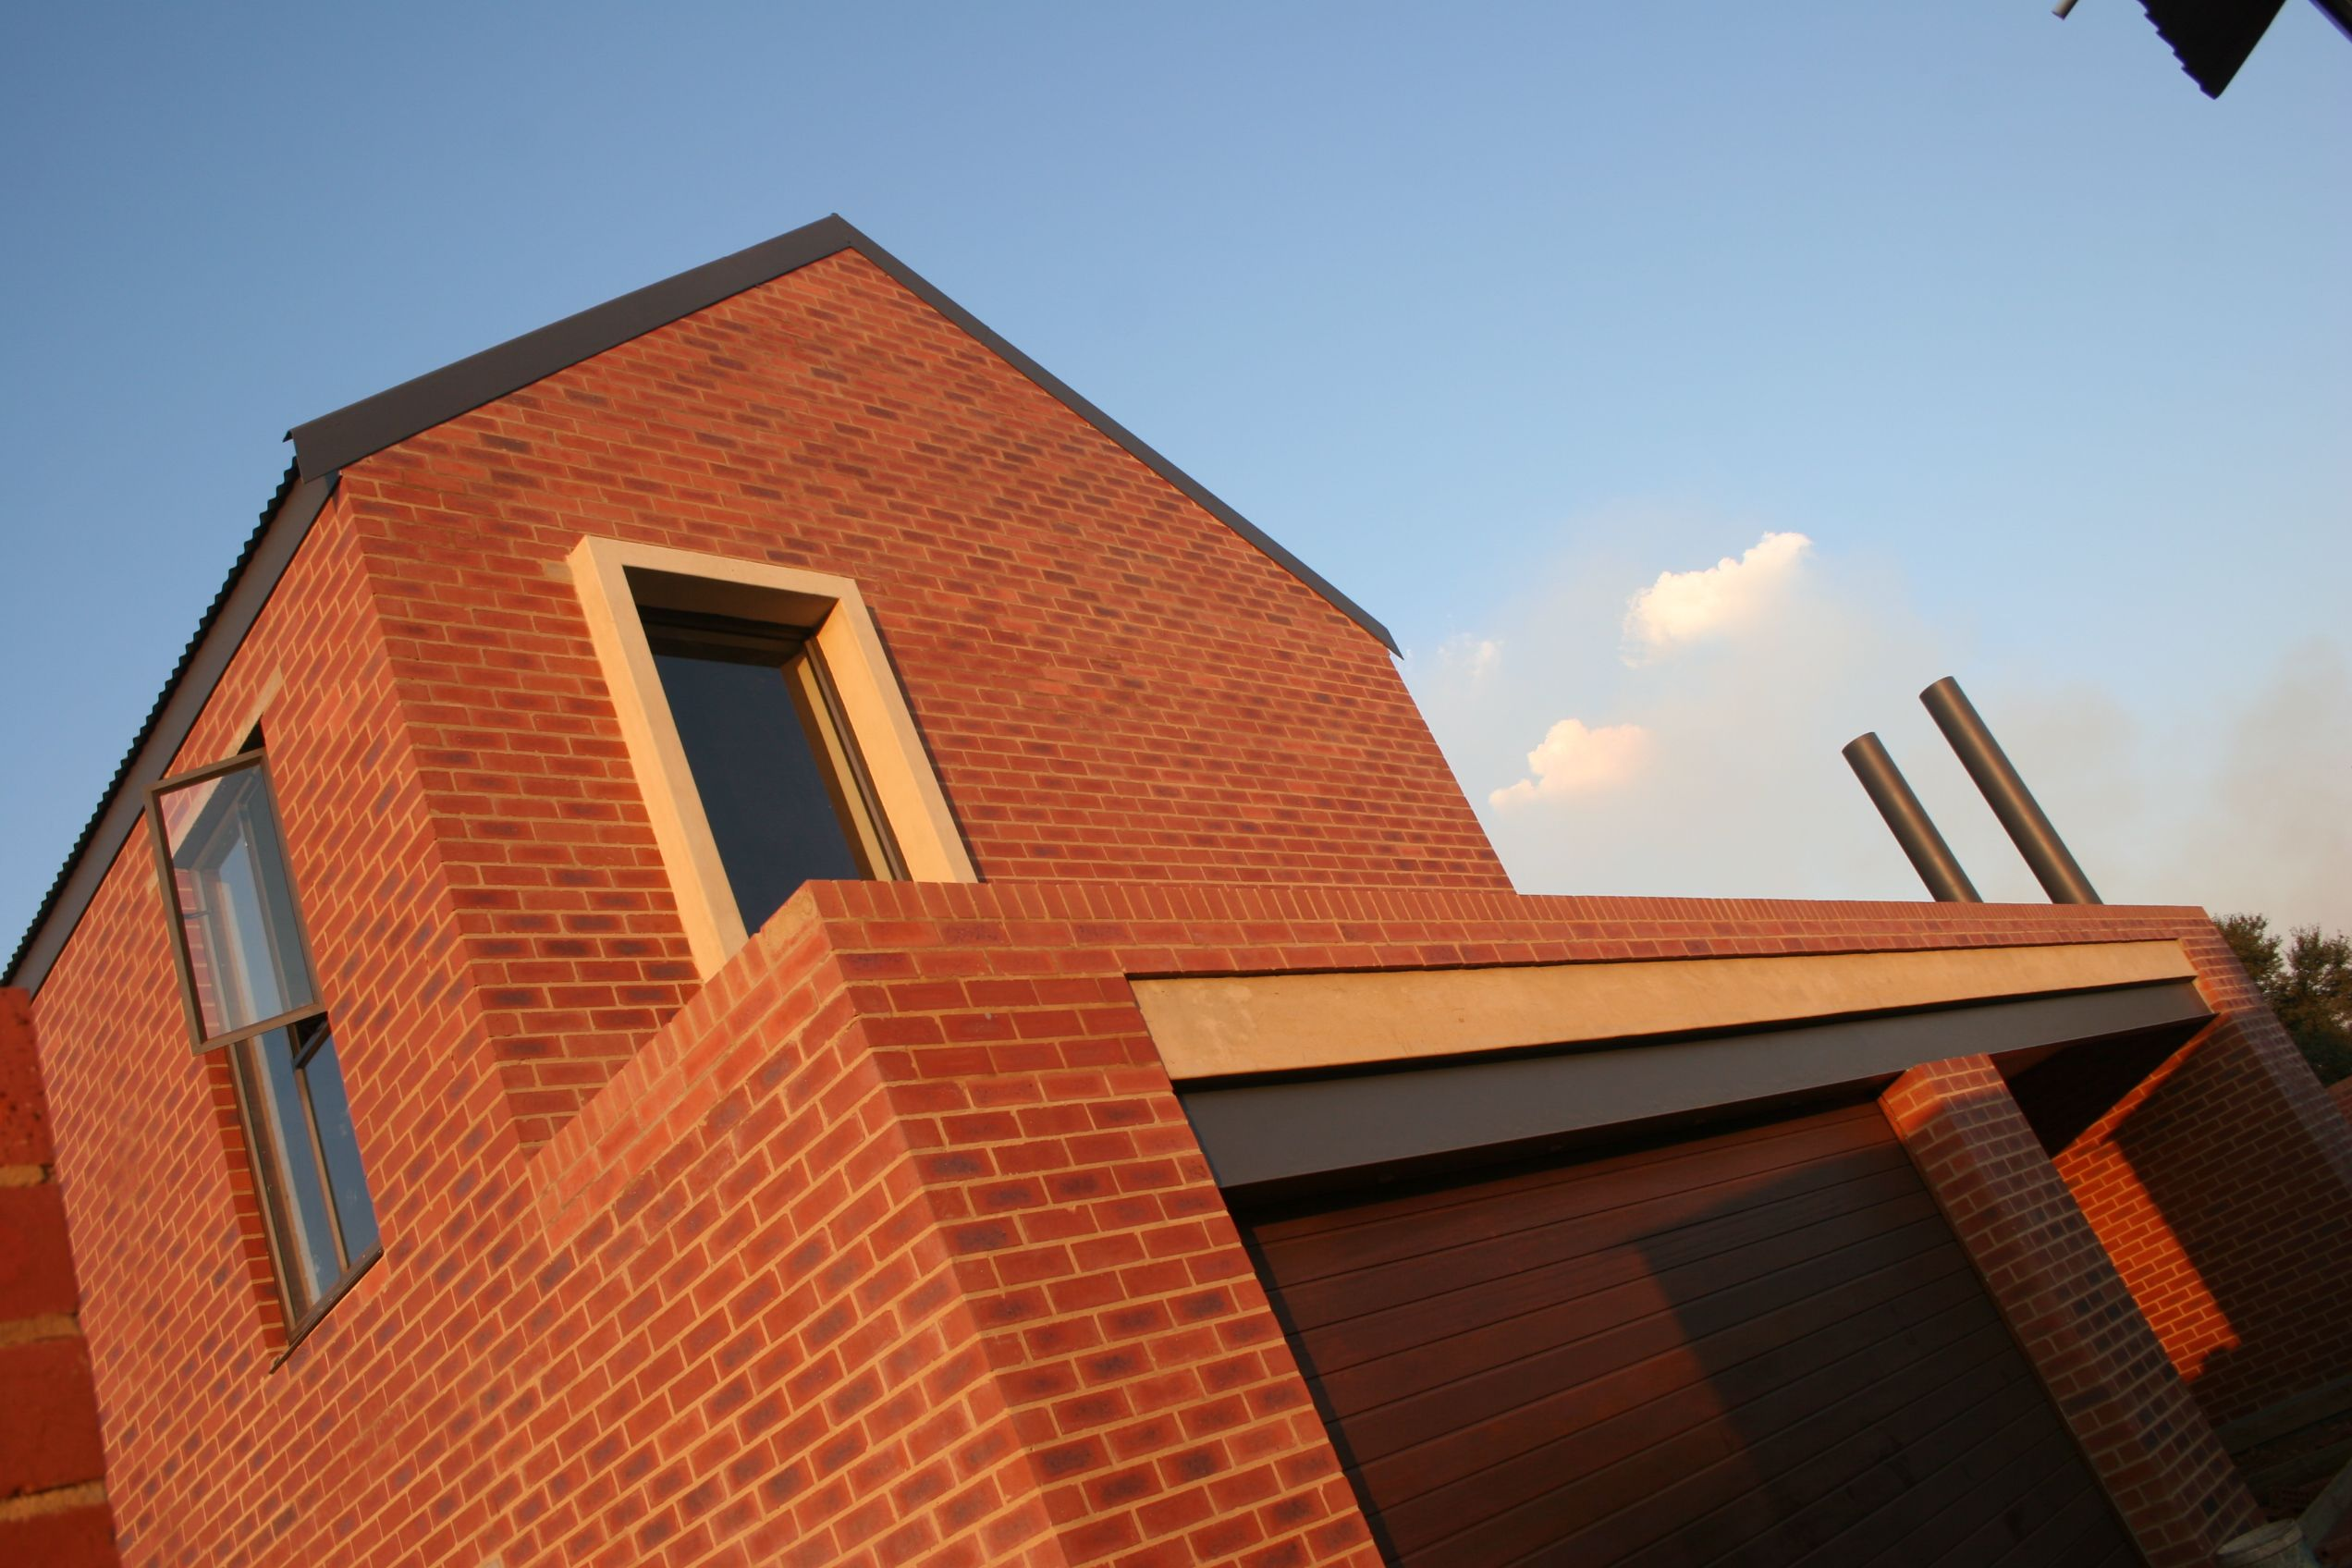 Mathews And Associates Architects Architect Courtyard House Residential Architecture